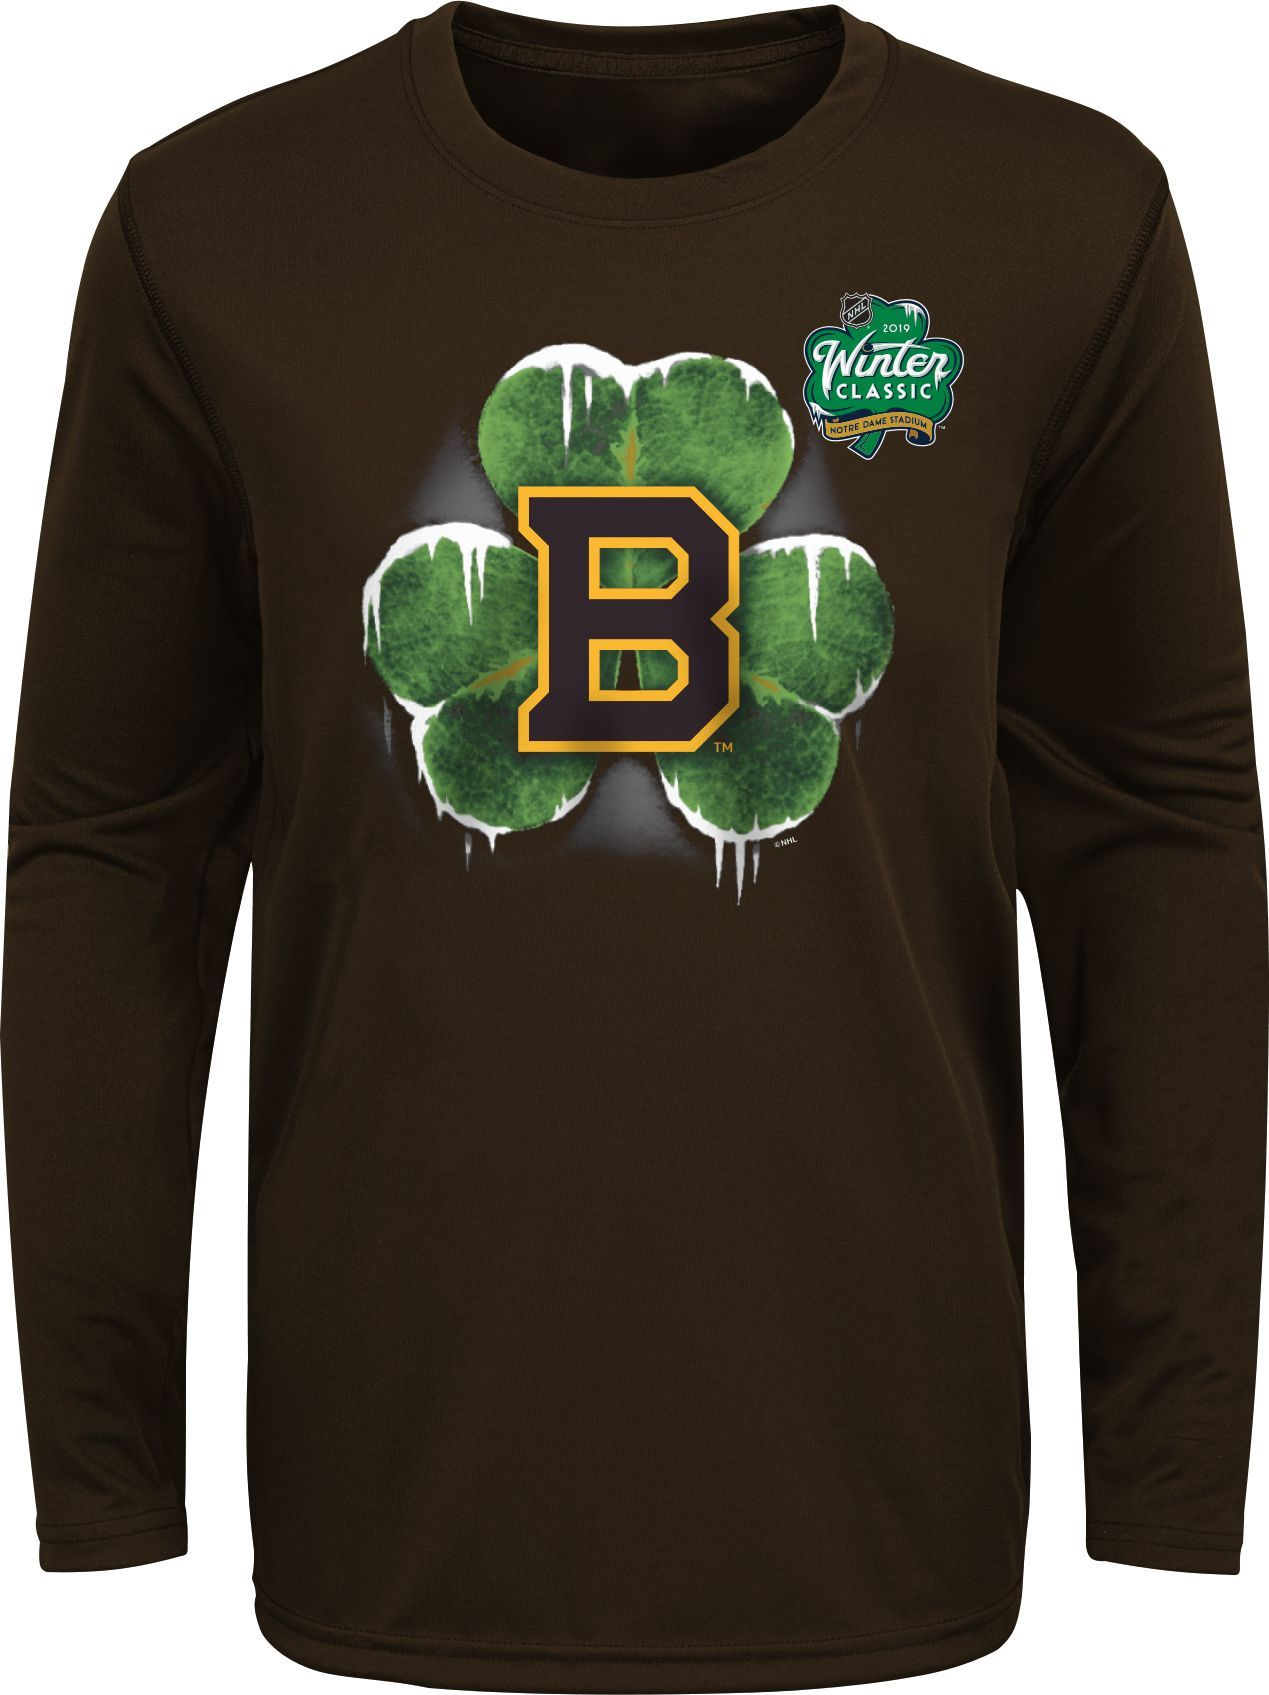 6427df737 NHL Youth 2019 Winter Classic Boston Bruins Under Ice Brown Long Sleeve  Shirt